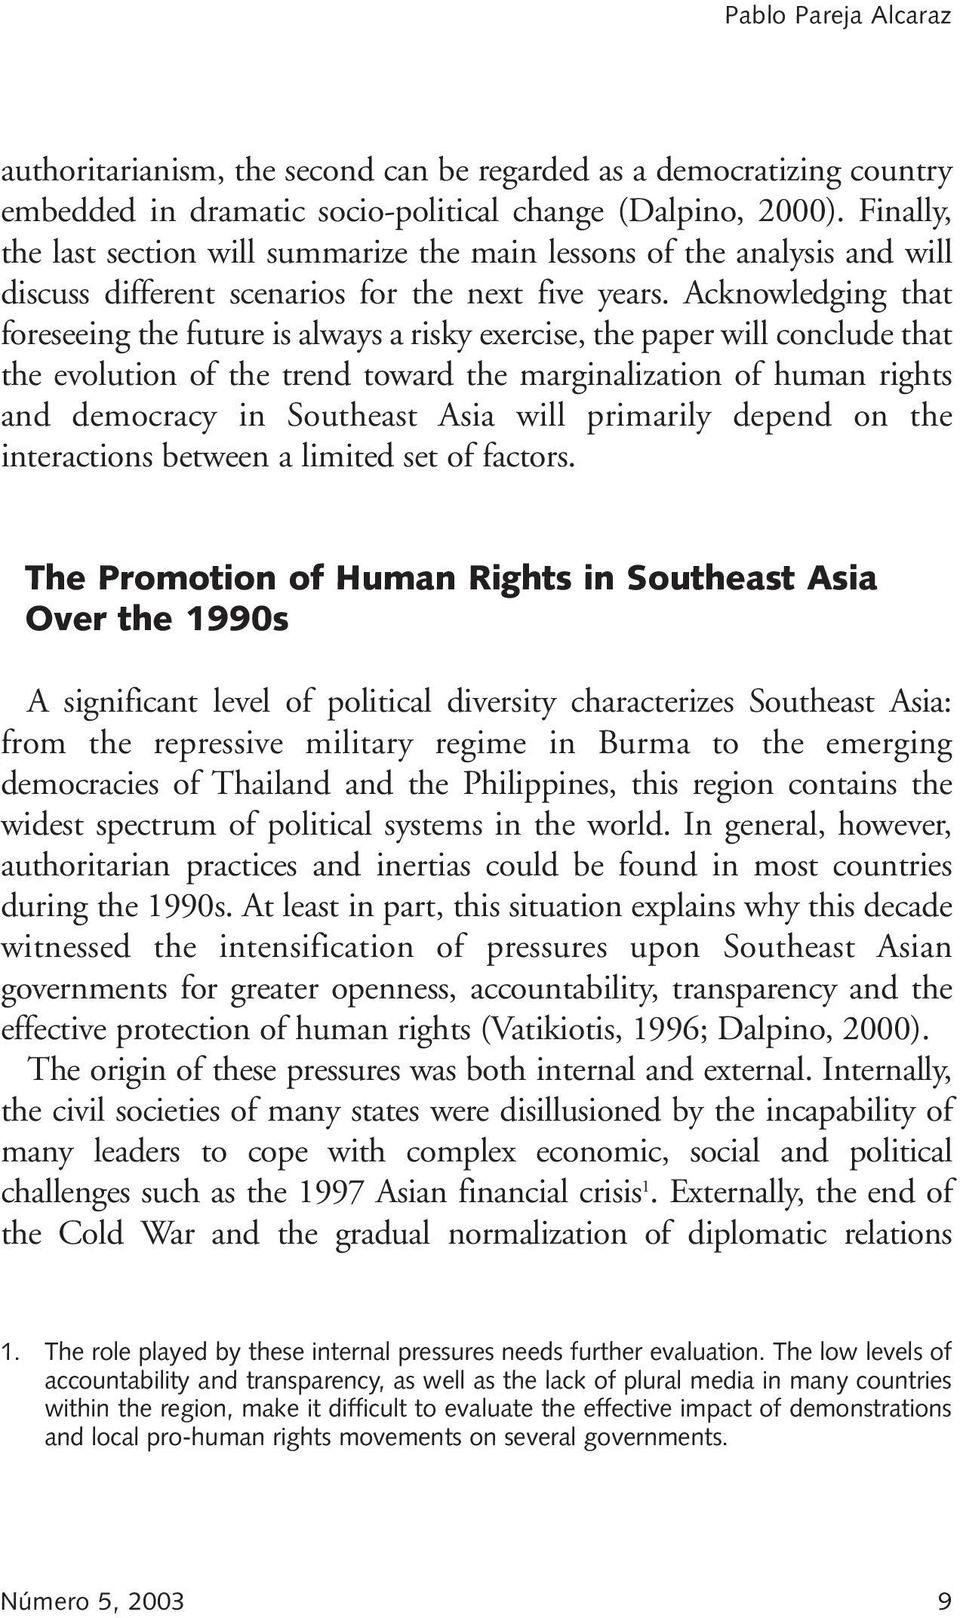 Acknowledging that foreseeing the future is always a risky exercise, the paper will conclude that the evolution of the trend toward the marginalization of human rights and democracy in Southeast Asia